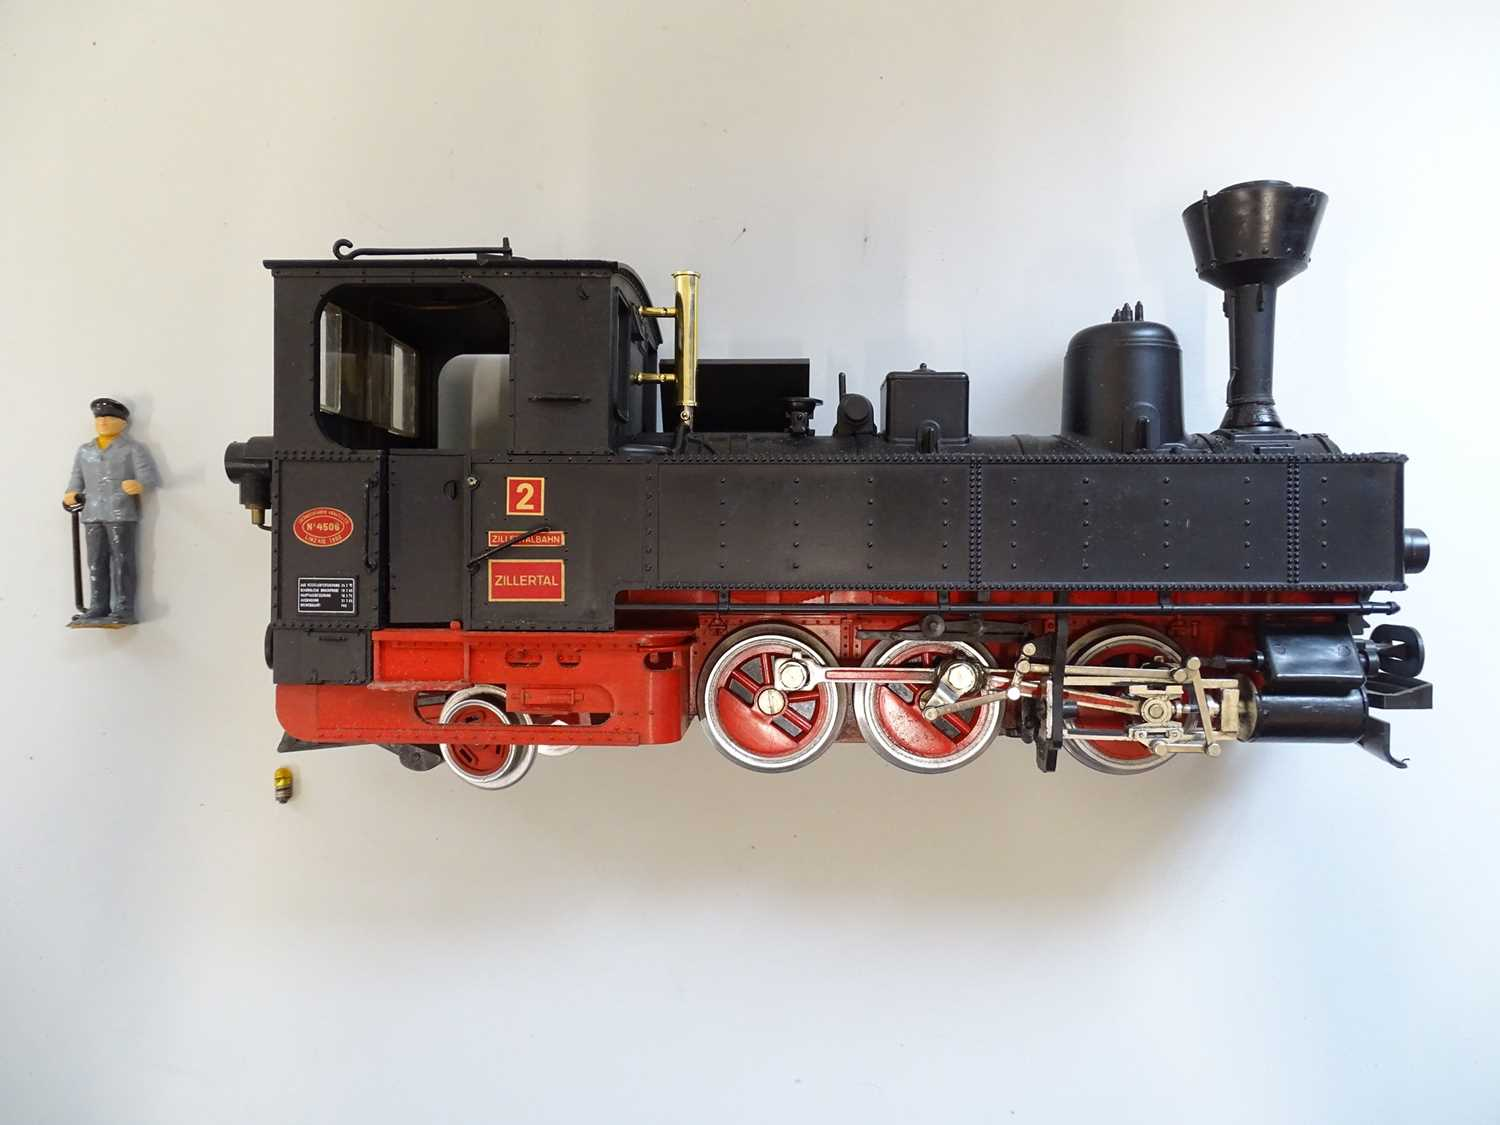 An LGB G Scale 2071D 0-6-2 steam tank locomotive in Zillertalbahn black livery numbered 2 - VG in - Image 2 of 4